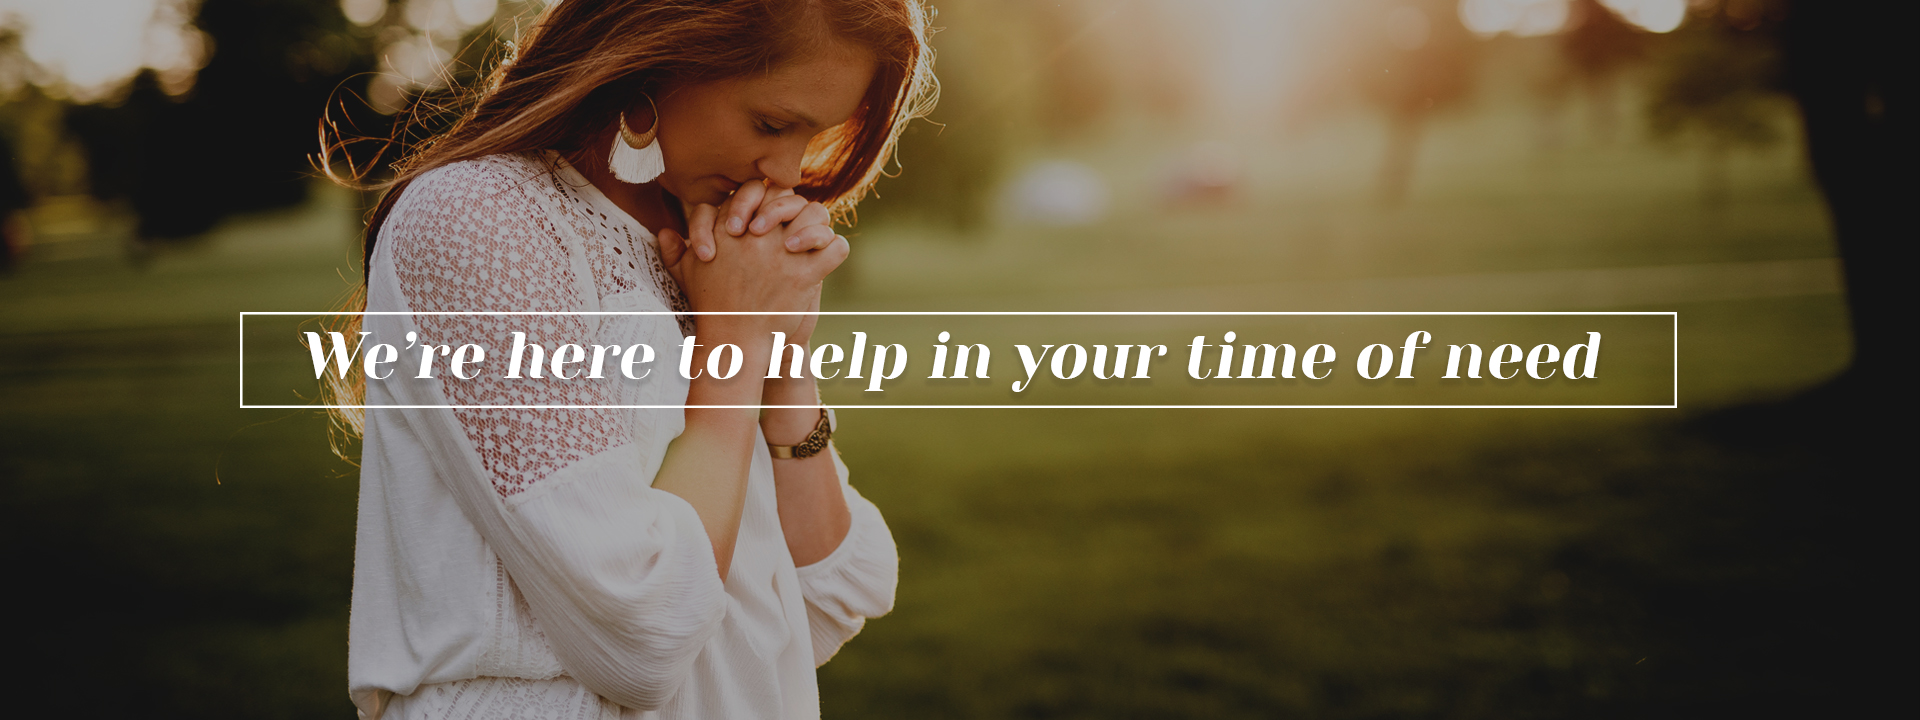 We're here to help in your time of need